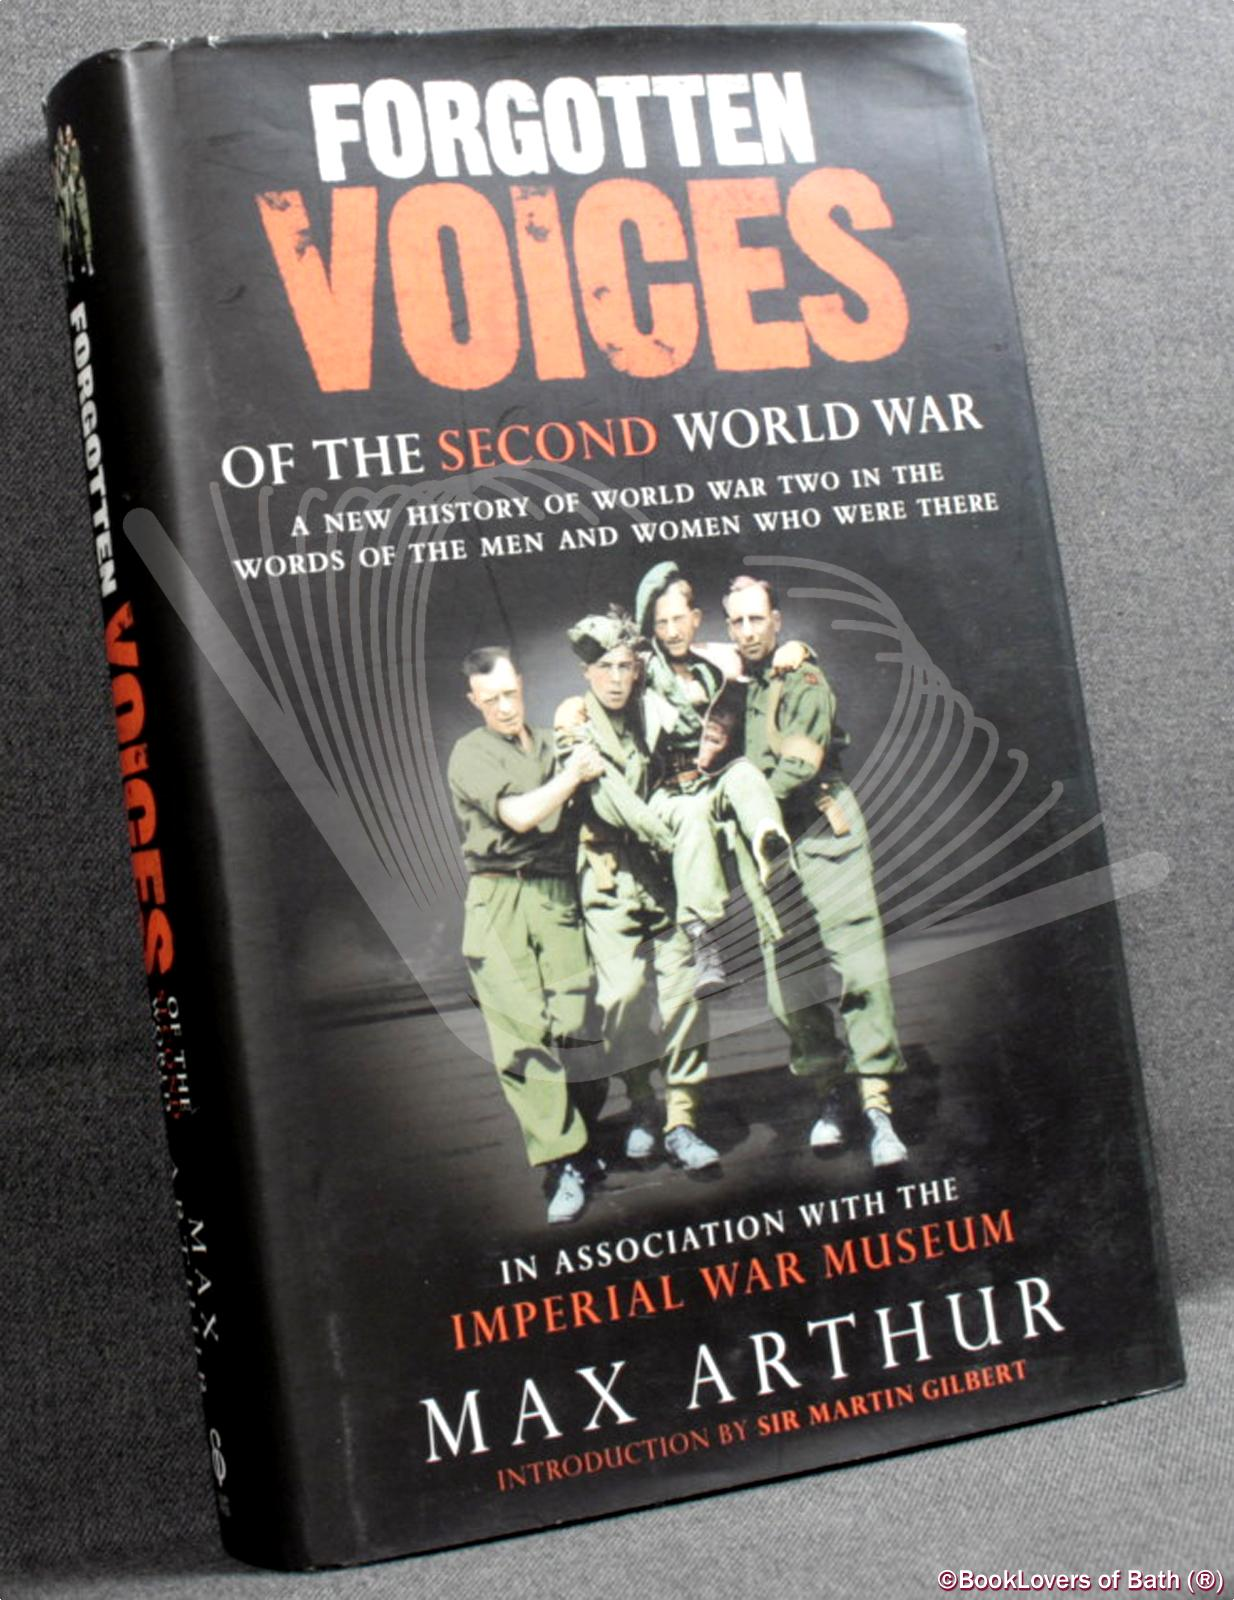 Forgotten Voices of the Second World War: A New History of World War Two in the Words of the Men and Women Who Were There - Max Arthur